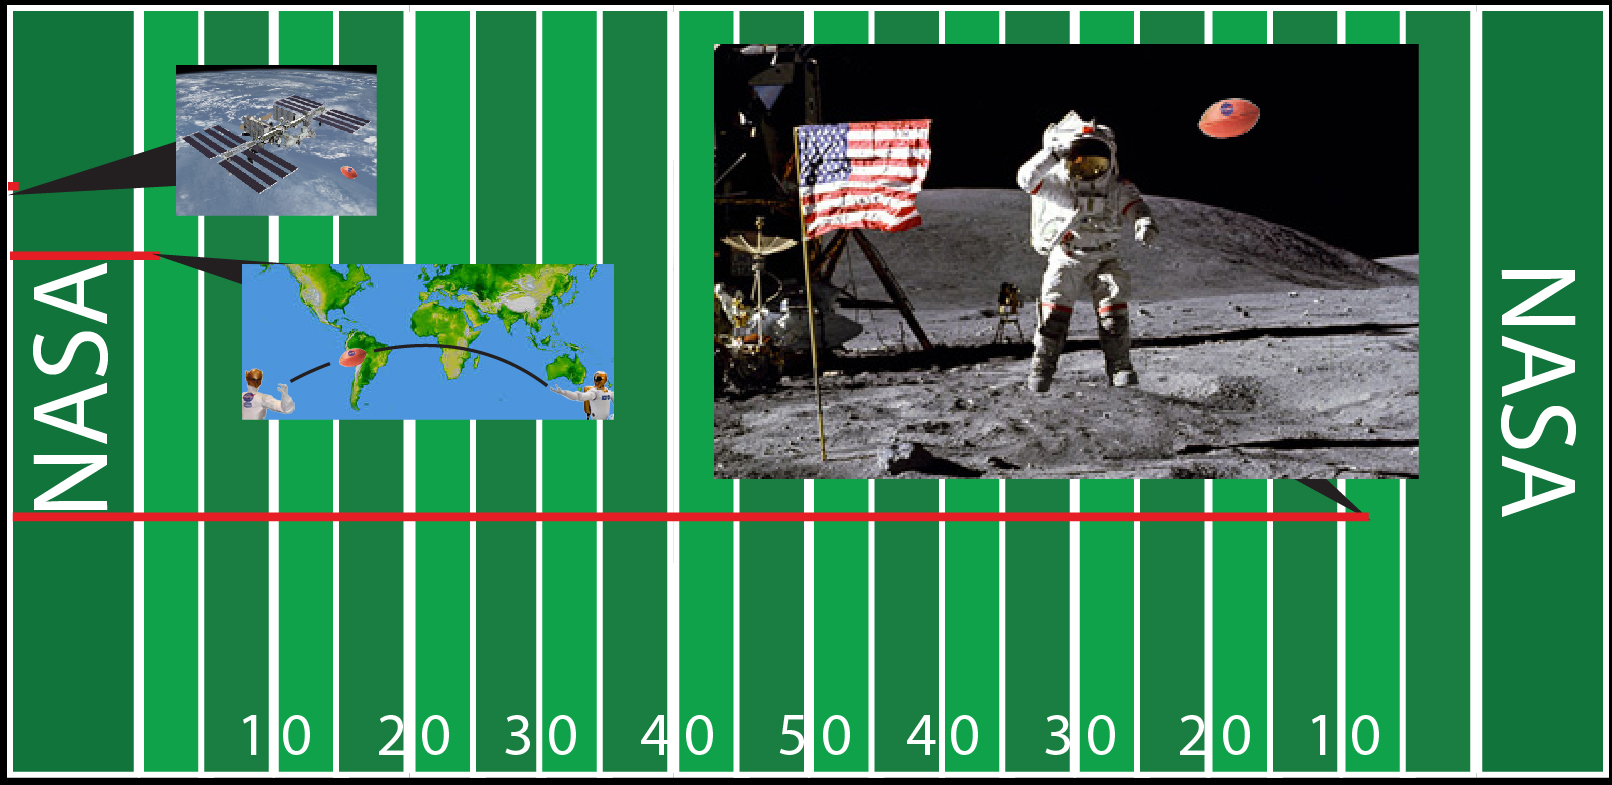 A graphic showing an Apollo astronaut catching a football near the opposite end zone of a football field